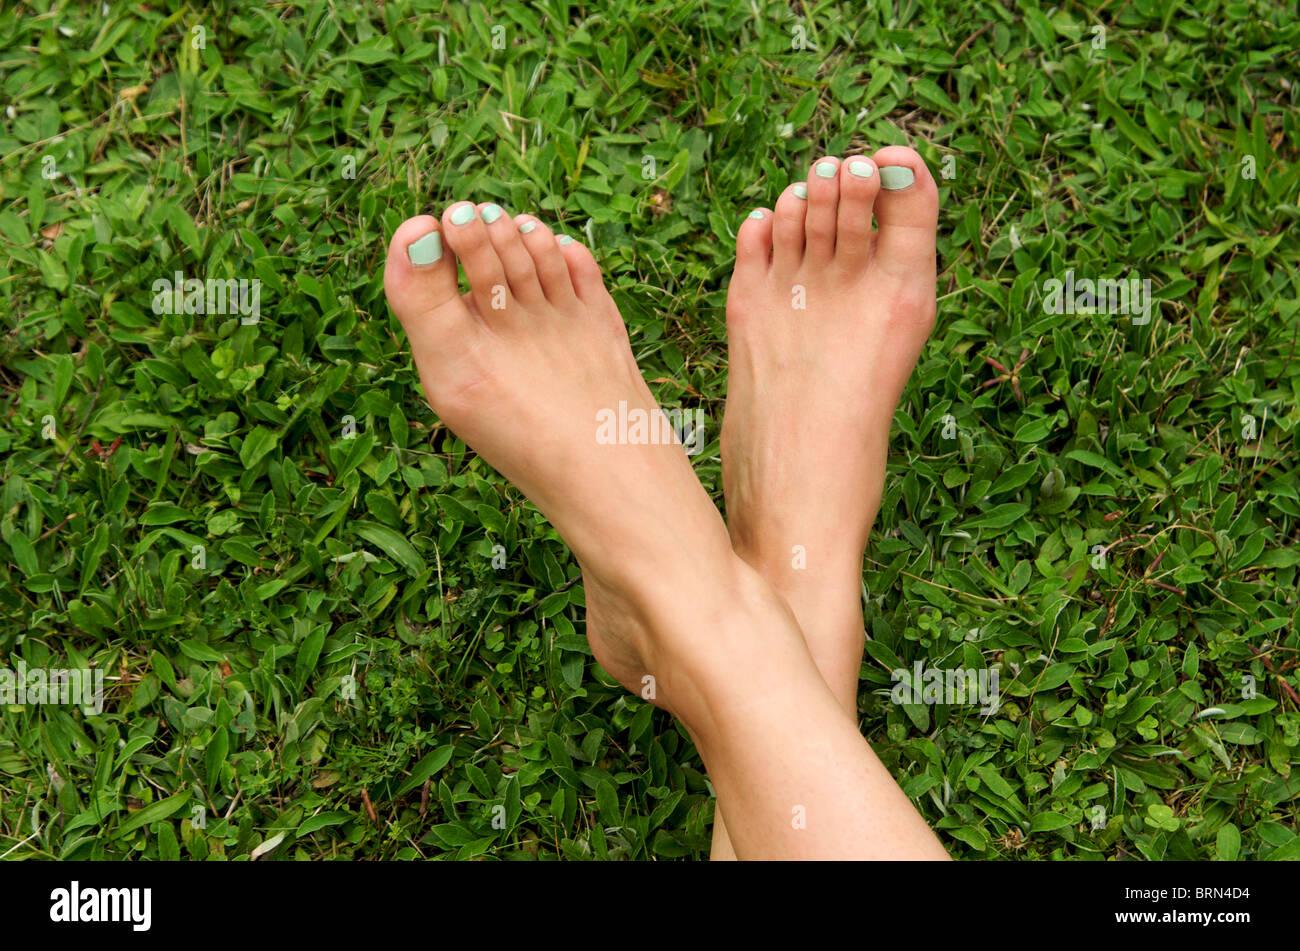 Feet and legs on grass outdoors - Stock Image